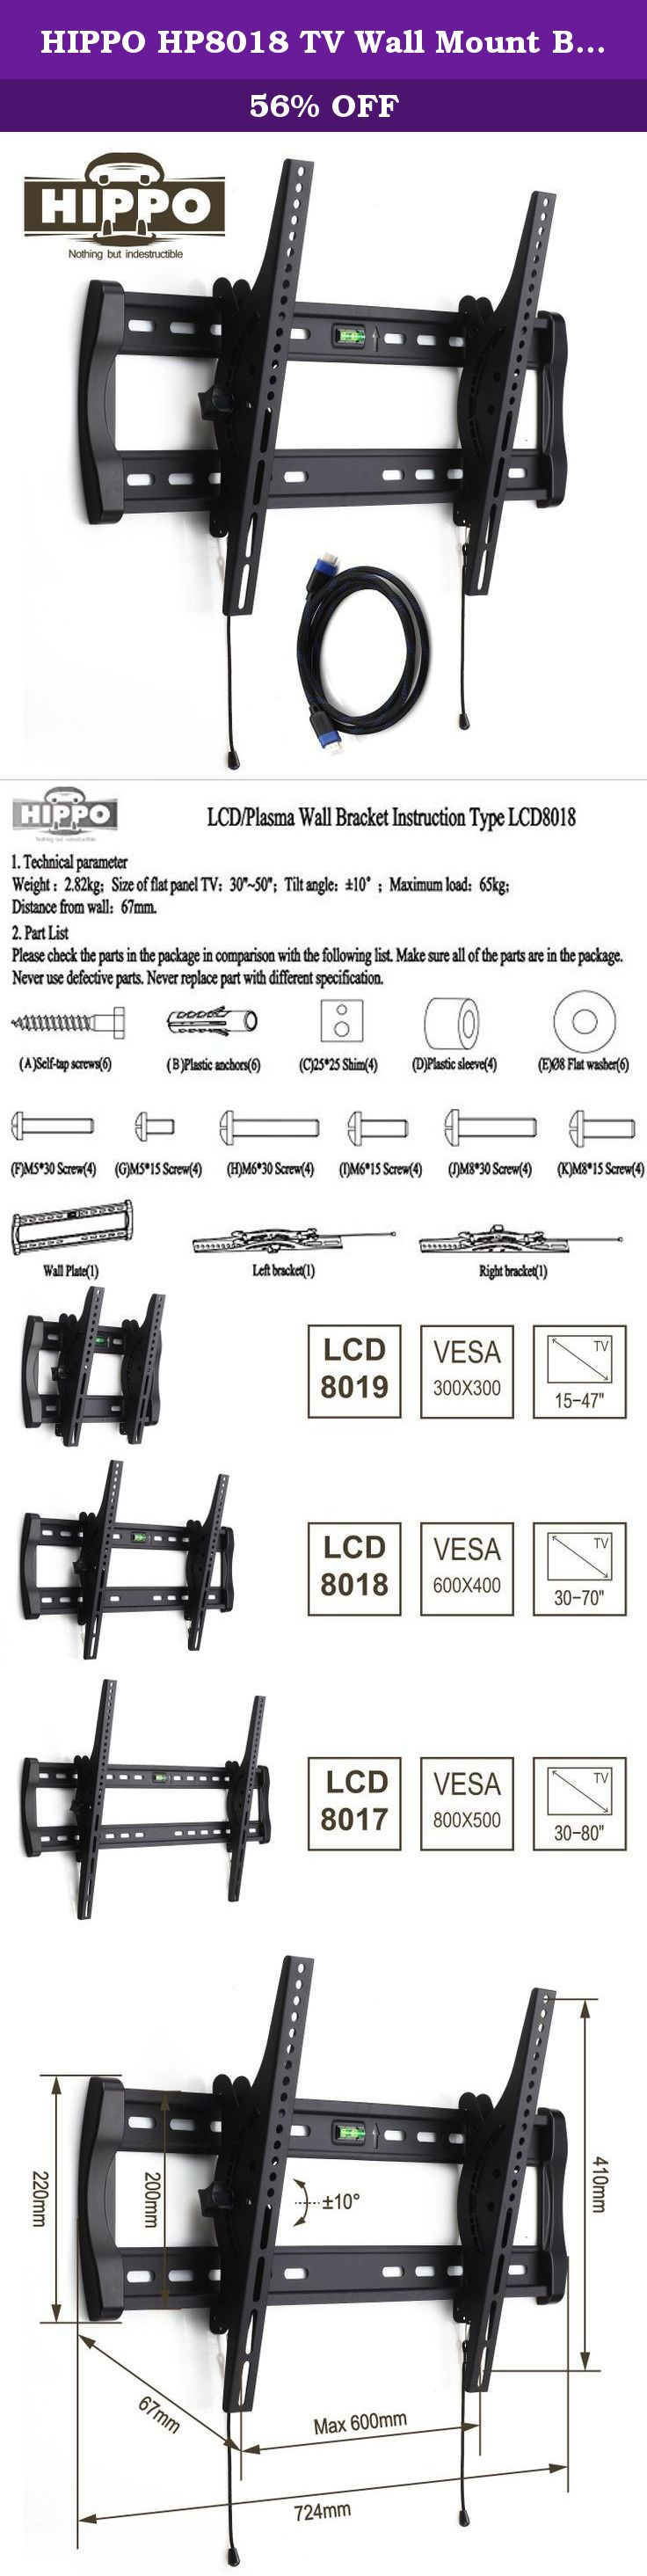 Hippo Hp8018 Tv Wall Mount Bracket For Most 42 70 Led Lcd Plasma Flat Screen Tvs Weighing Up To 132 Lbs Tv Wall Mount Bracket Wall Mounted Tv Tv Accessories